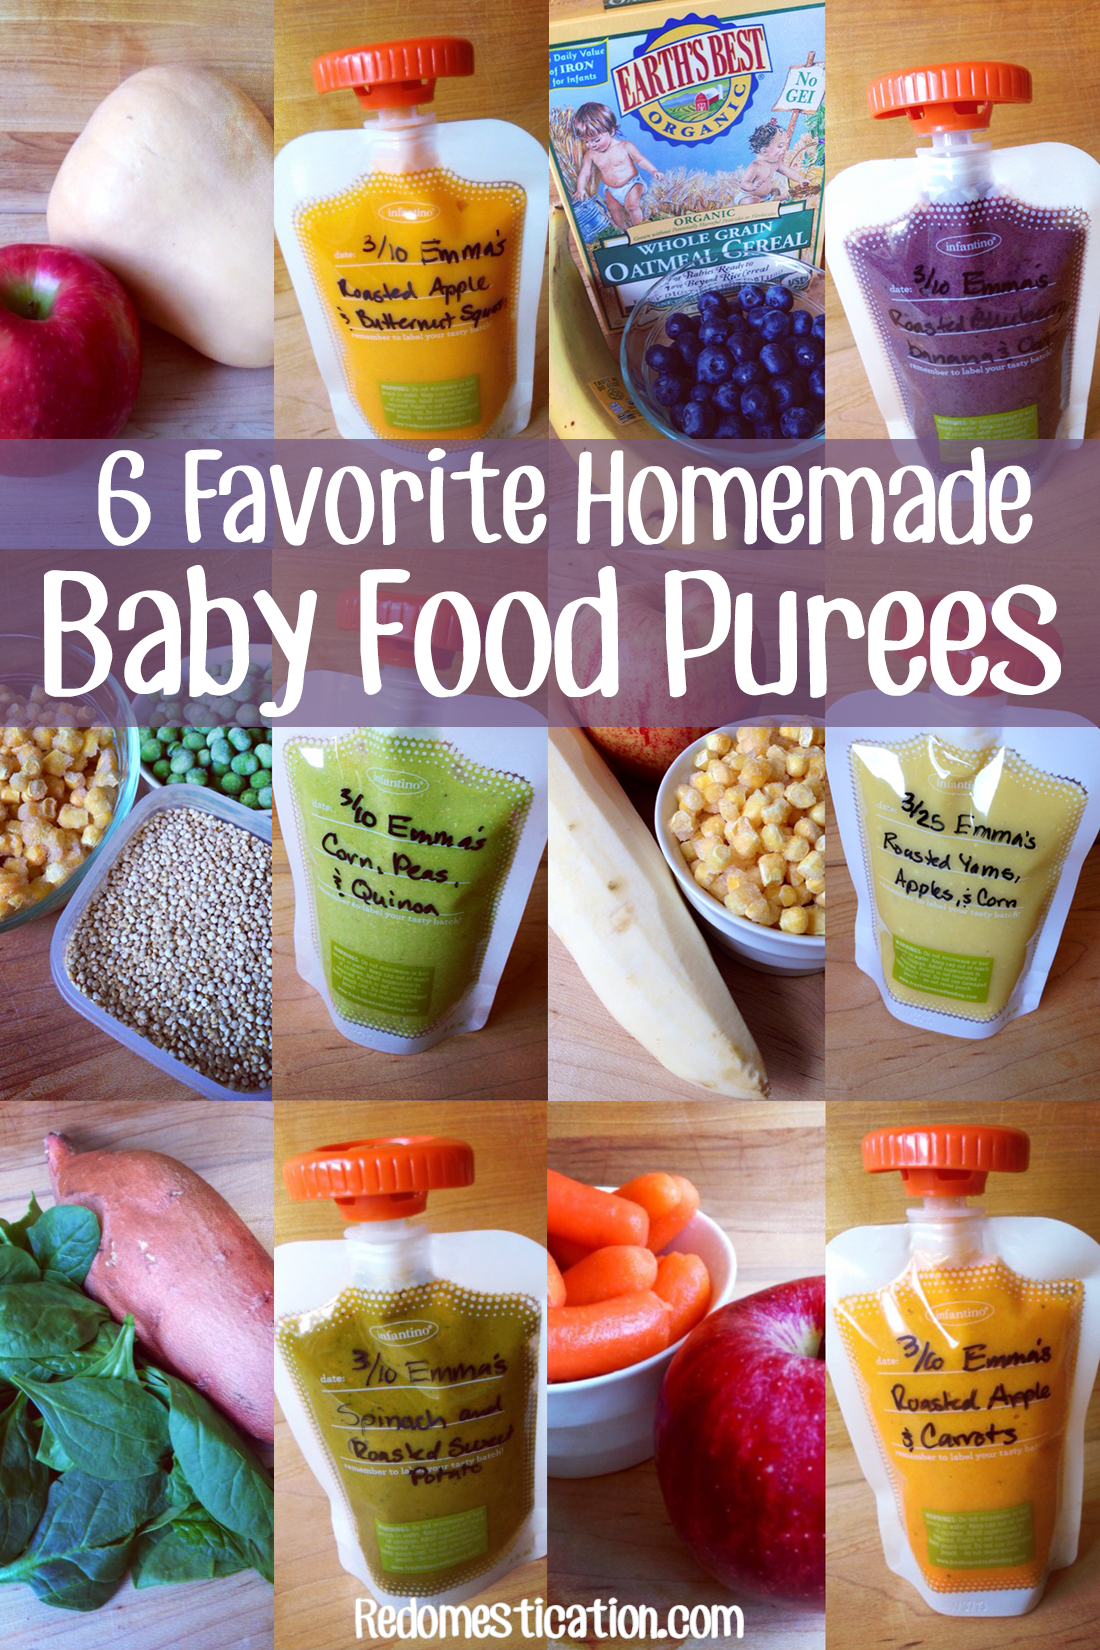 Homemade baby food recipes w infantino squeeze pouches detachable homemade baby food recipes w infantino squeeze pouches detachable spoon blueberry banana oatmeal butternut squash apple yams spinach apple carrots forumfinder Gallery